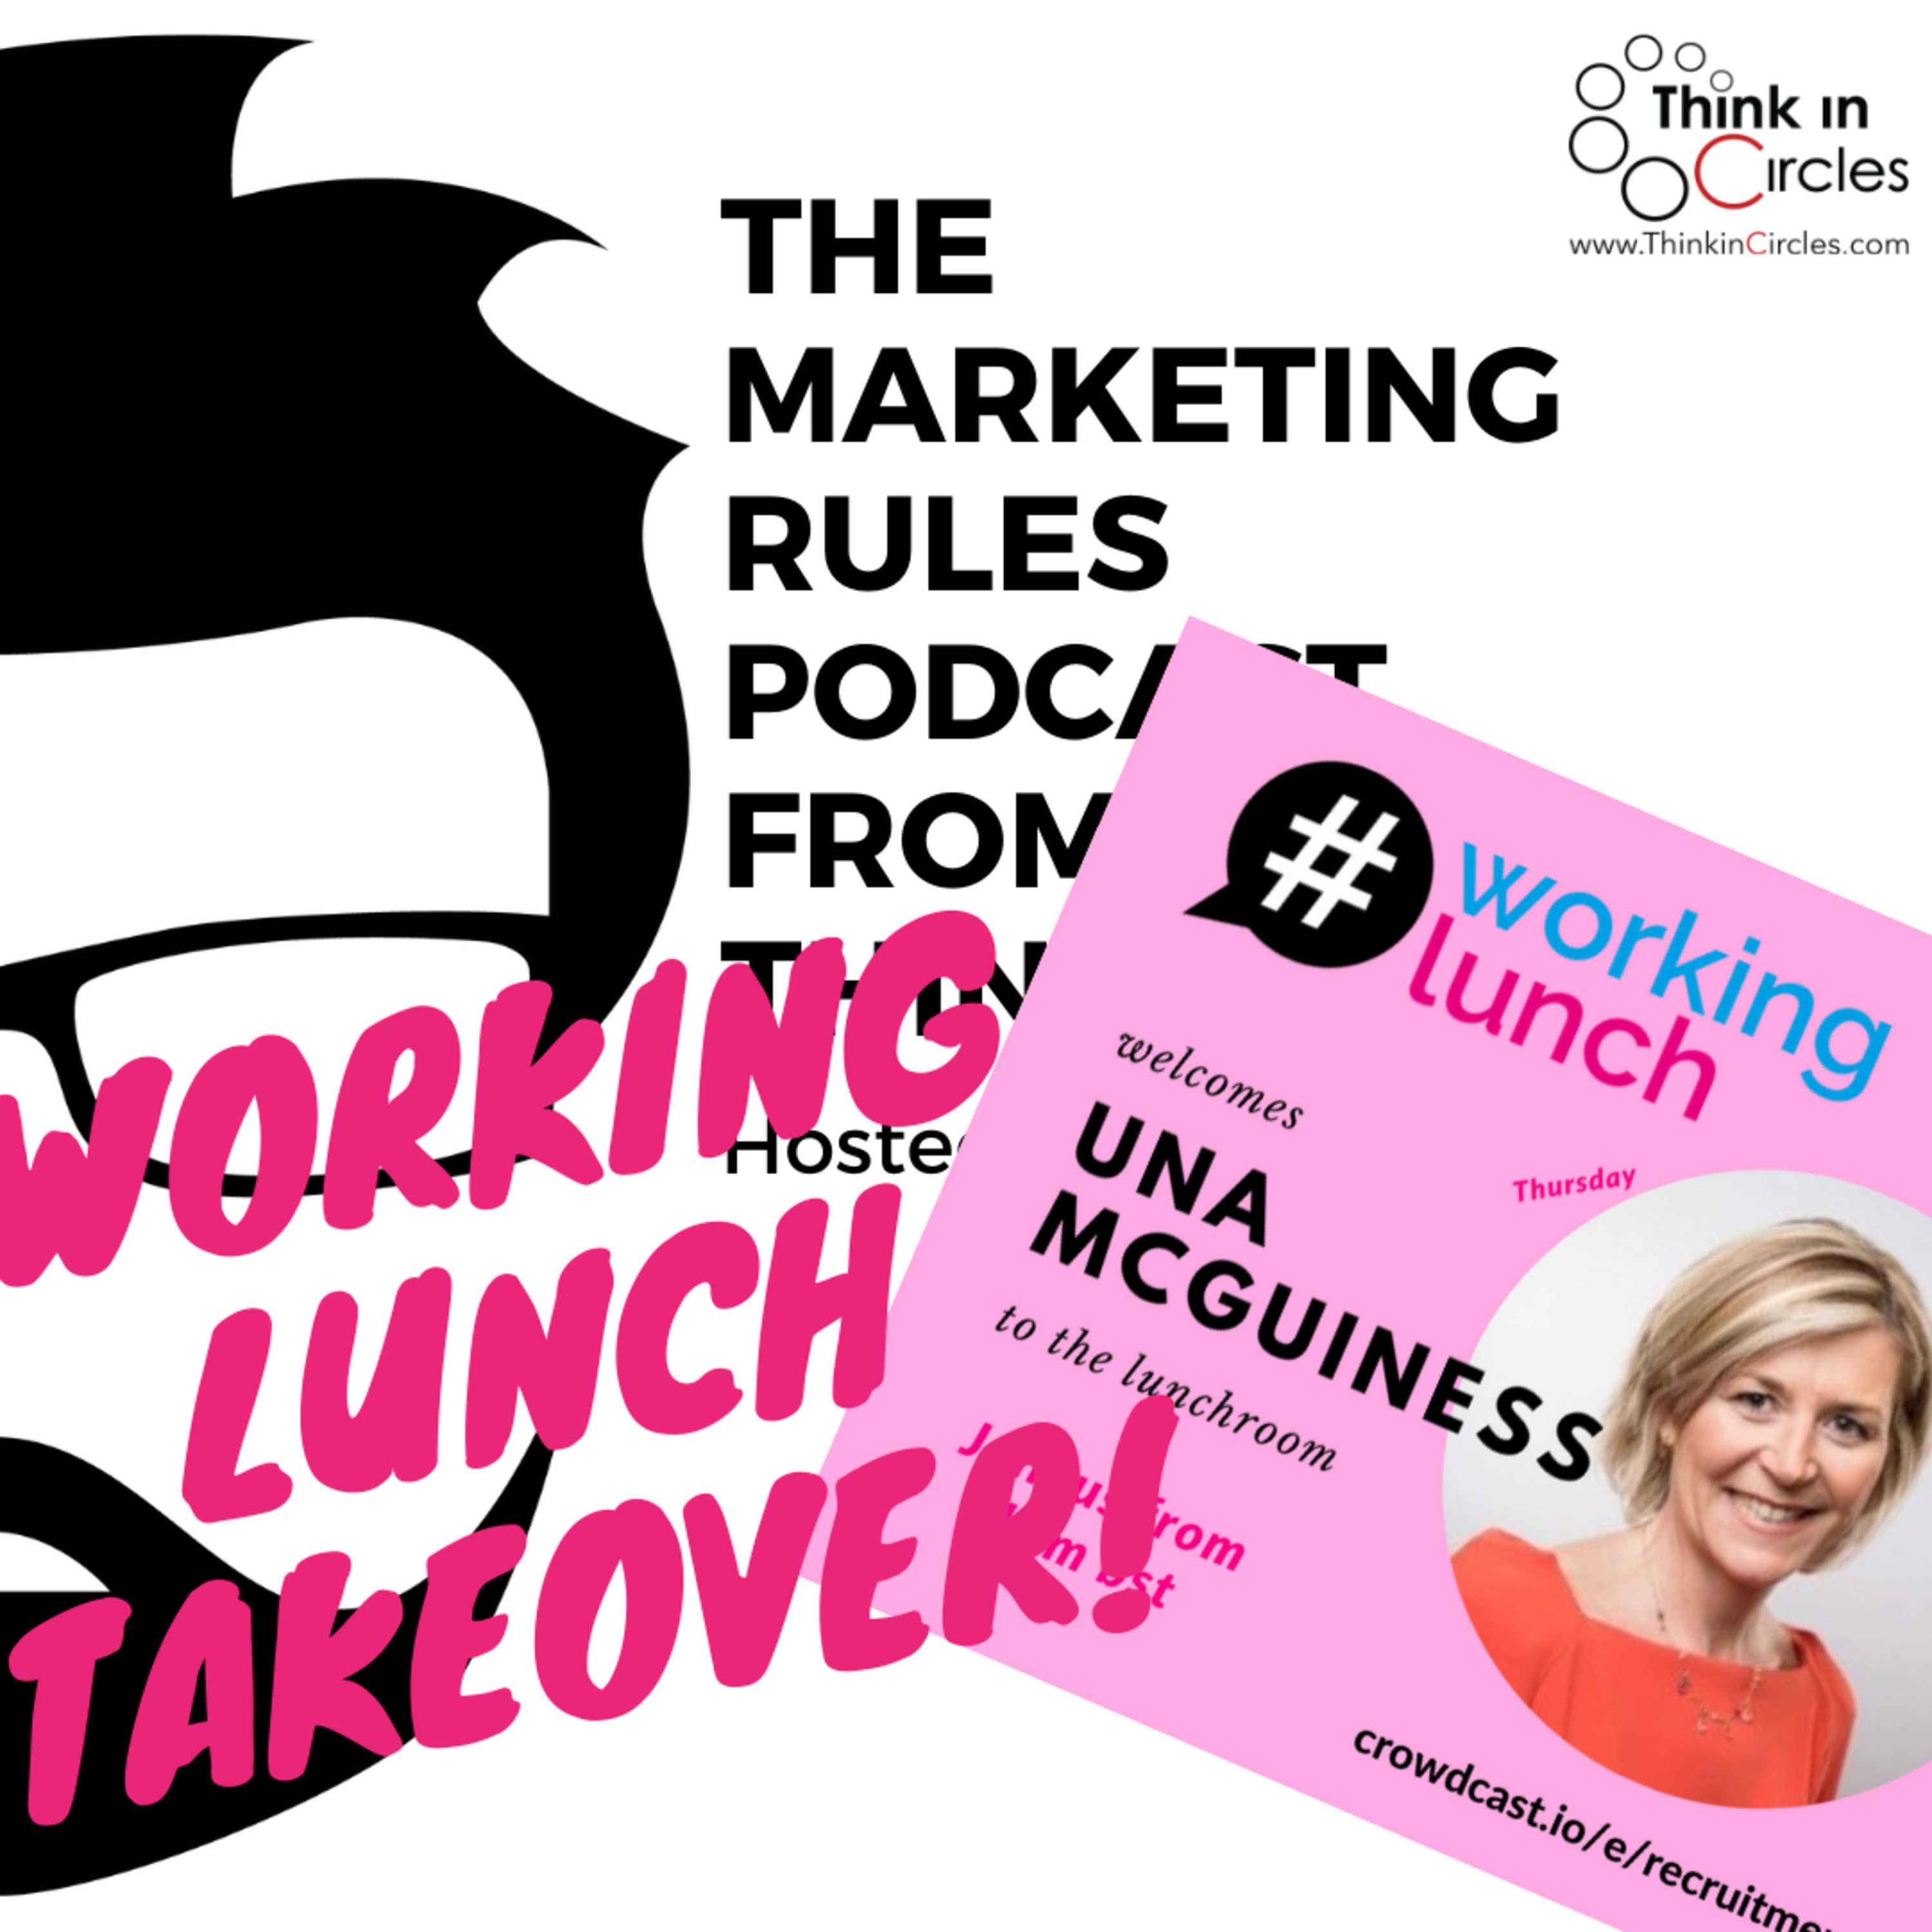 Working Lunch takeover with Una McGuinness